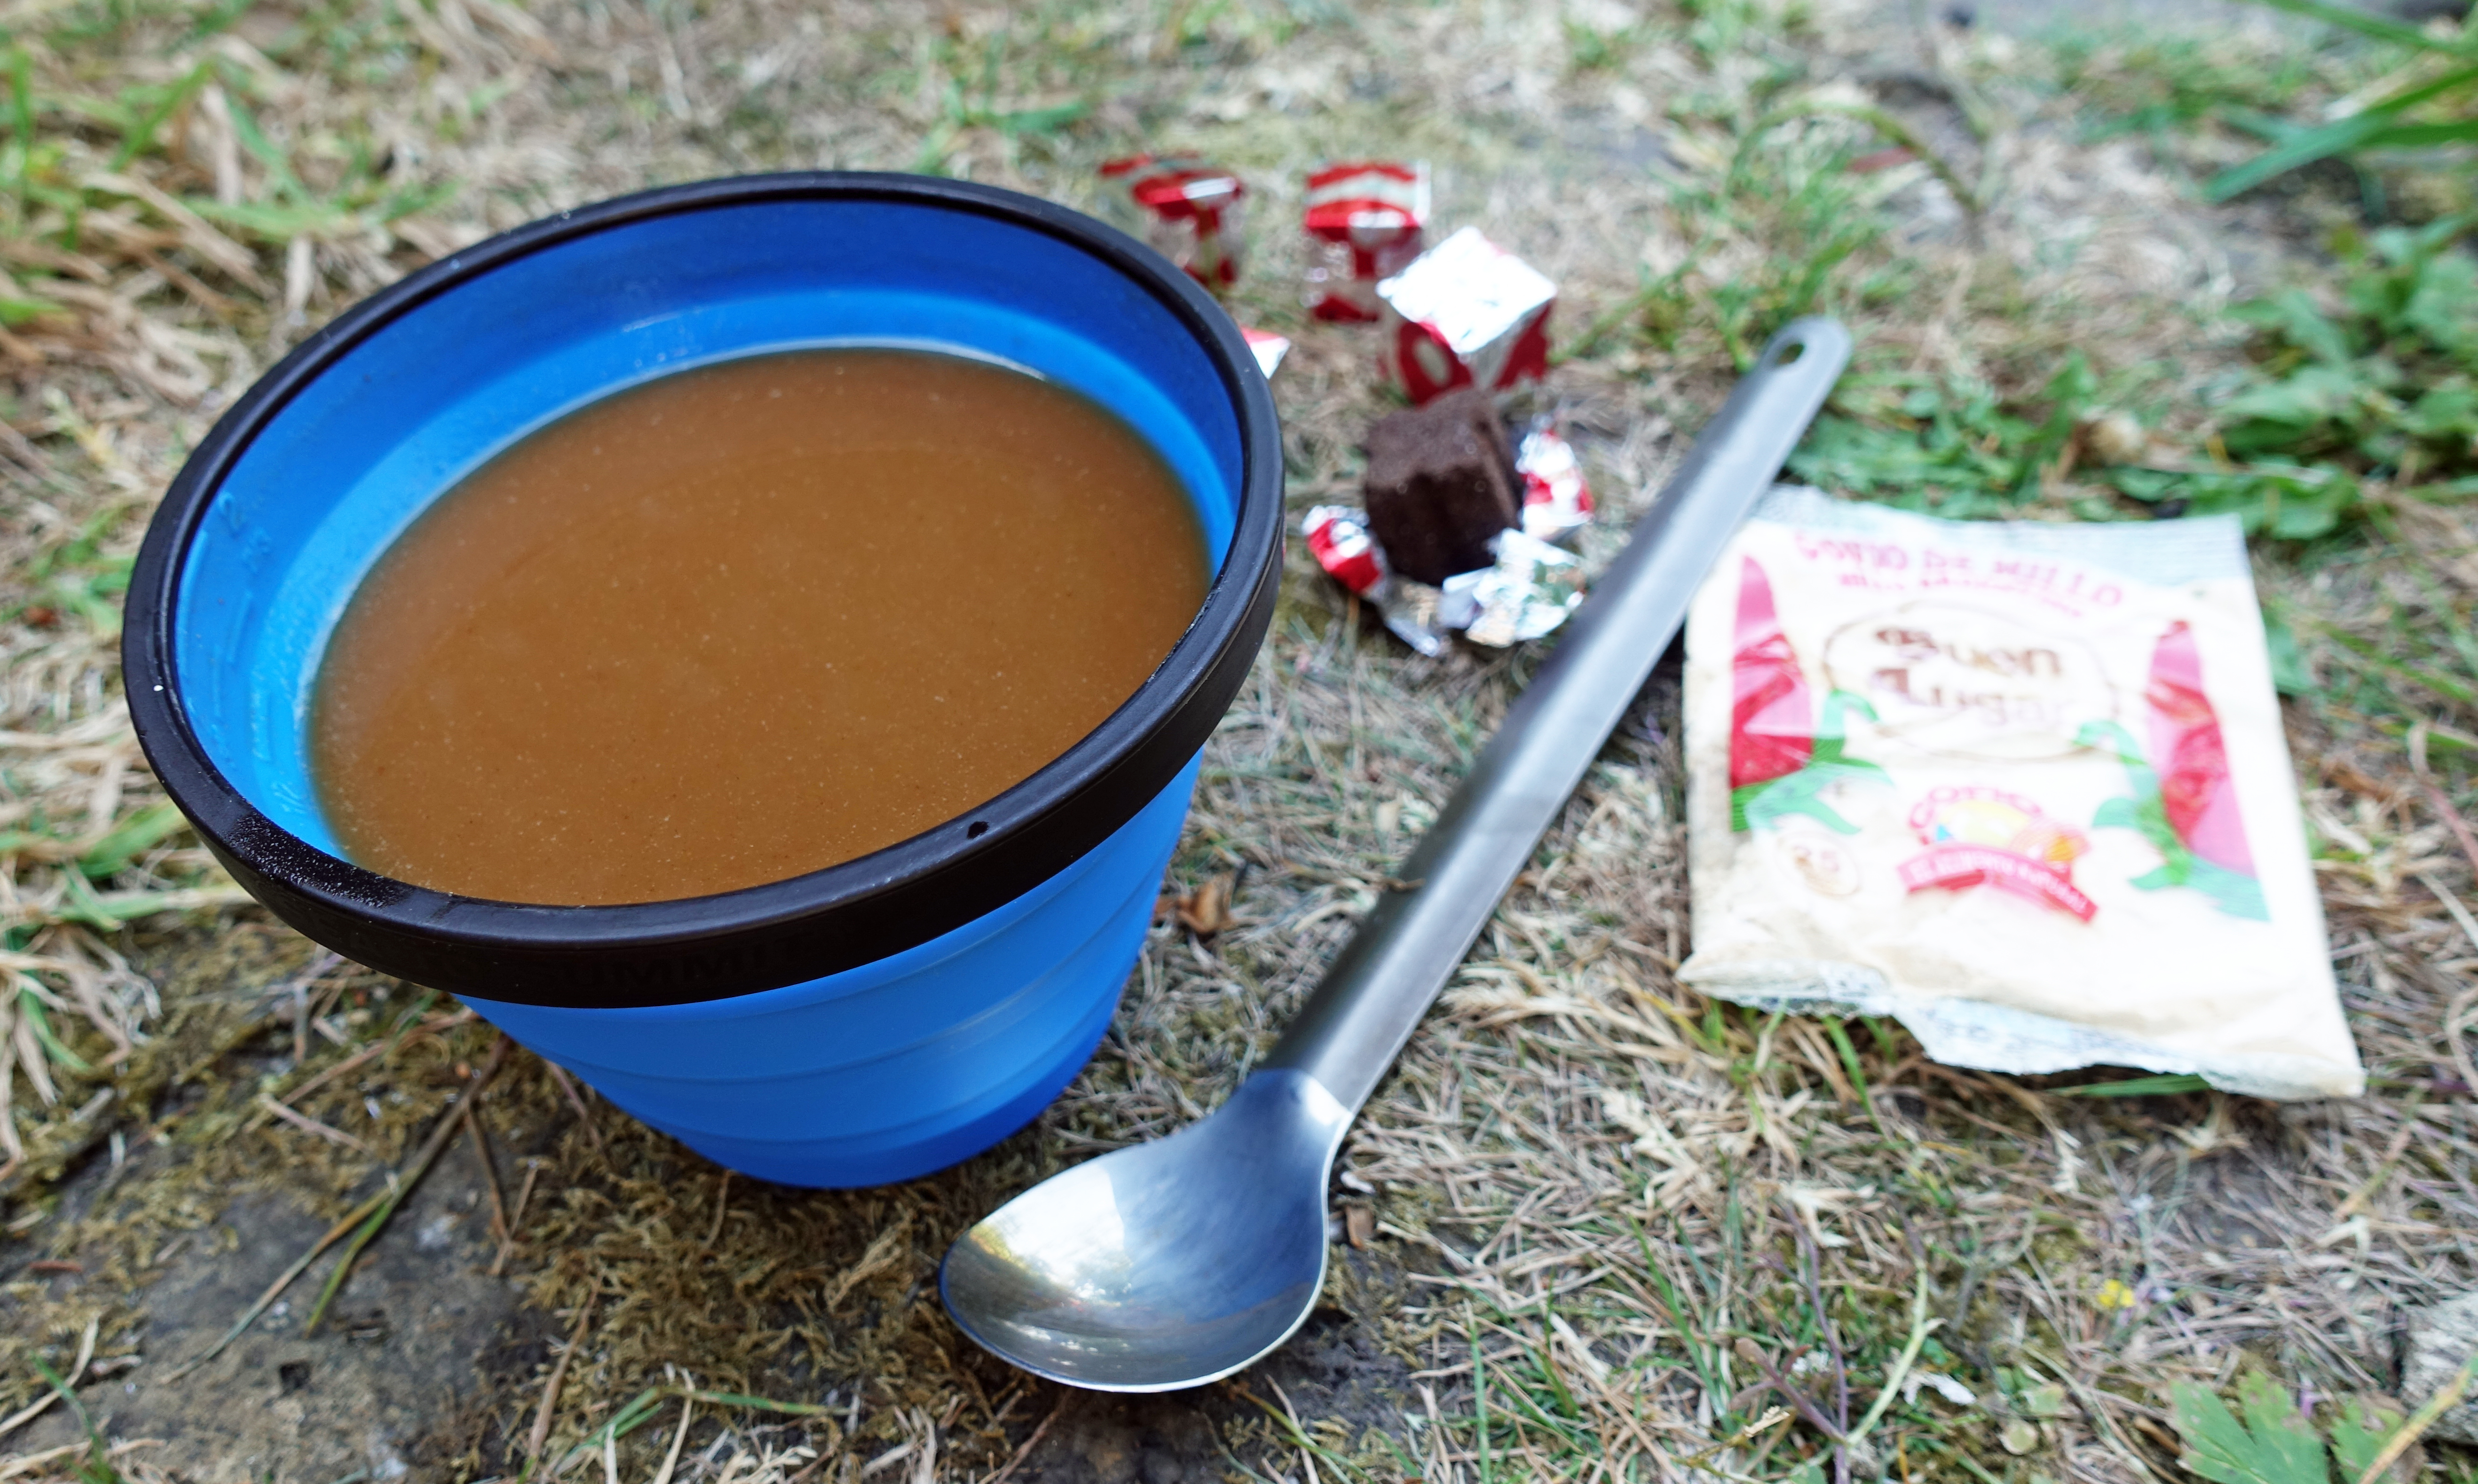 25g of Gofio will mix to a smooth paste with a little cold water easily. Topped up with boiling water and with an added Oxo, this makes a satisfying light liquid drink on trail during a days hike or to add lost salts at the end of the day